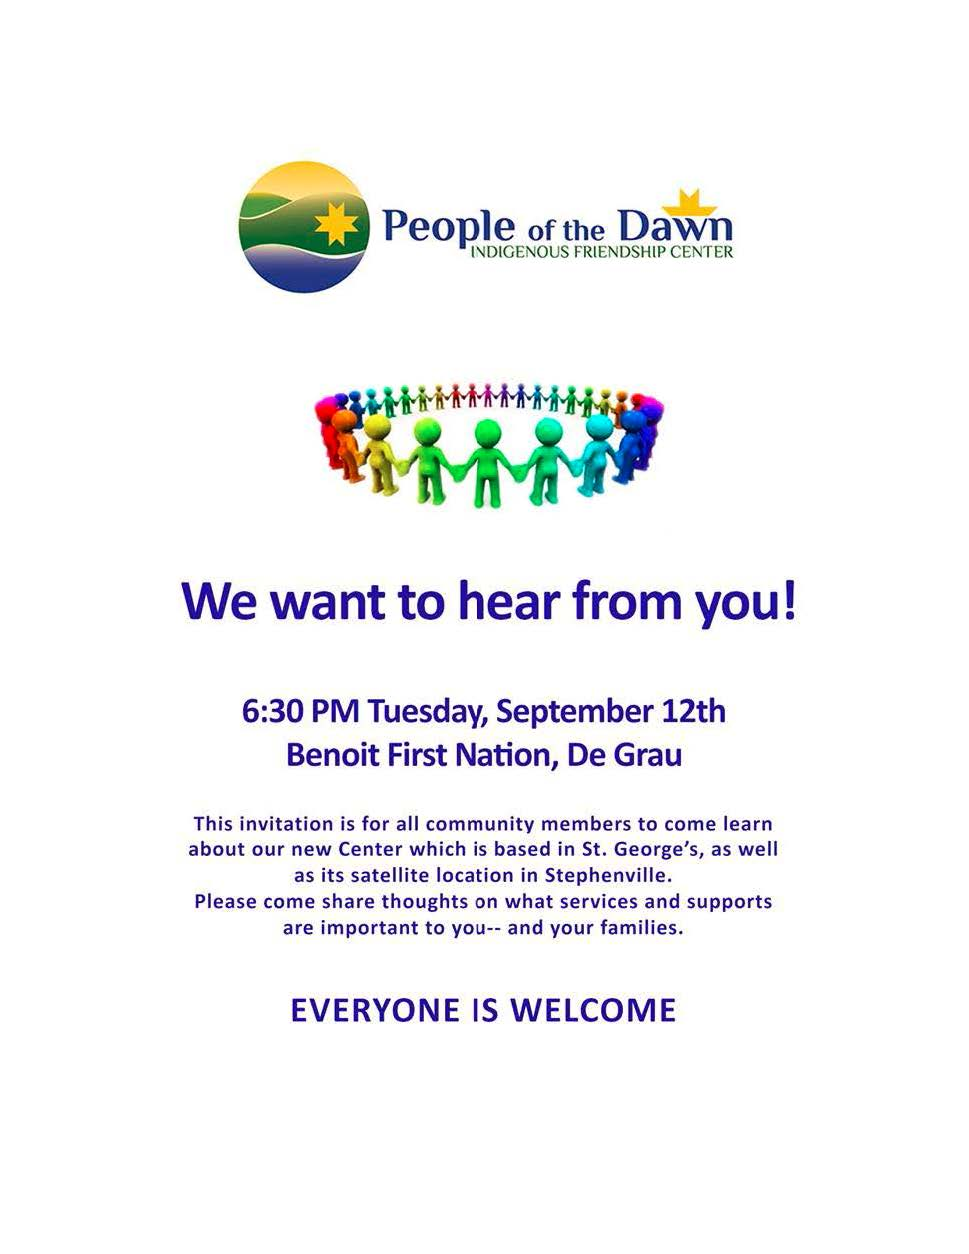 People of the Dawn Friendship Center